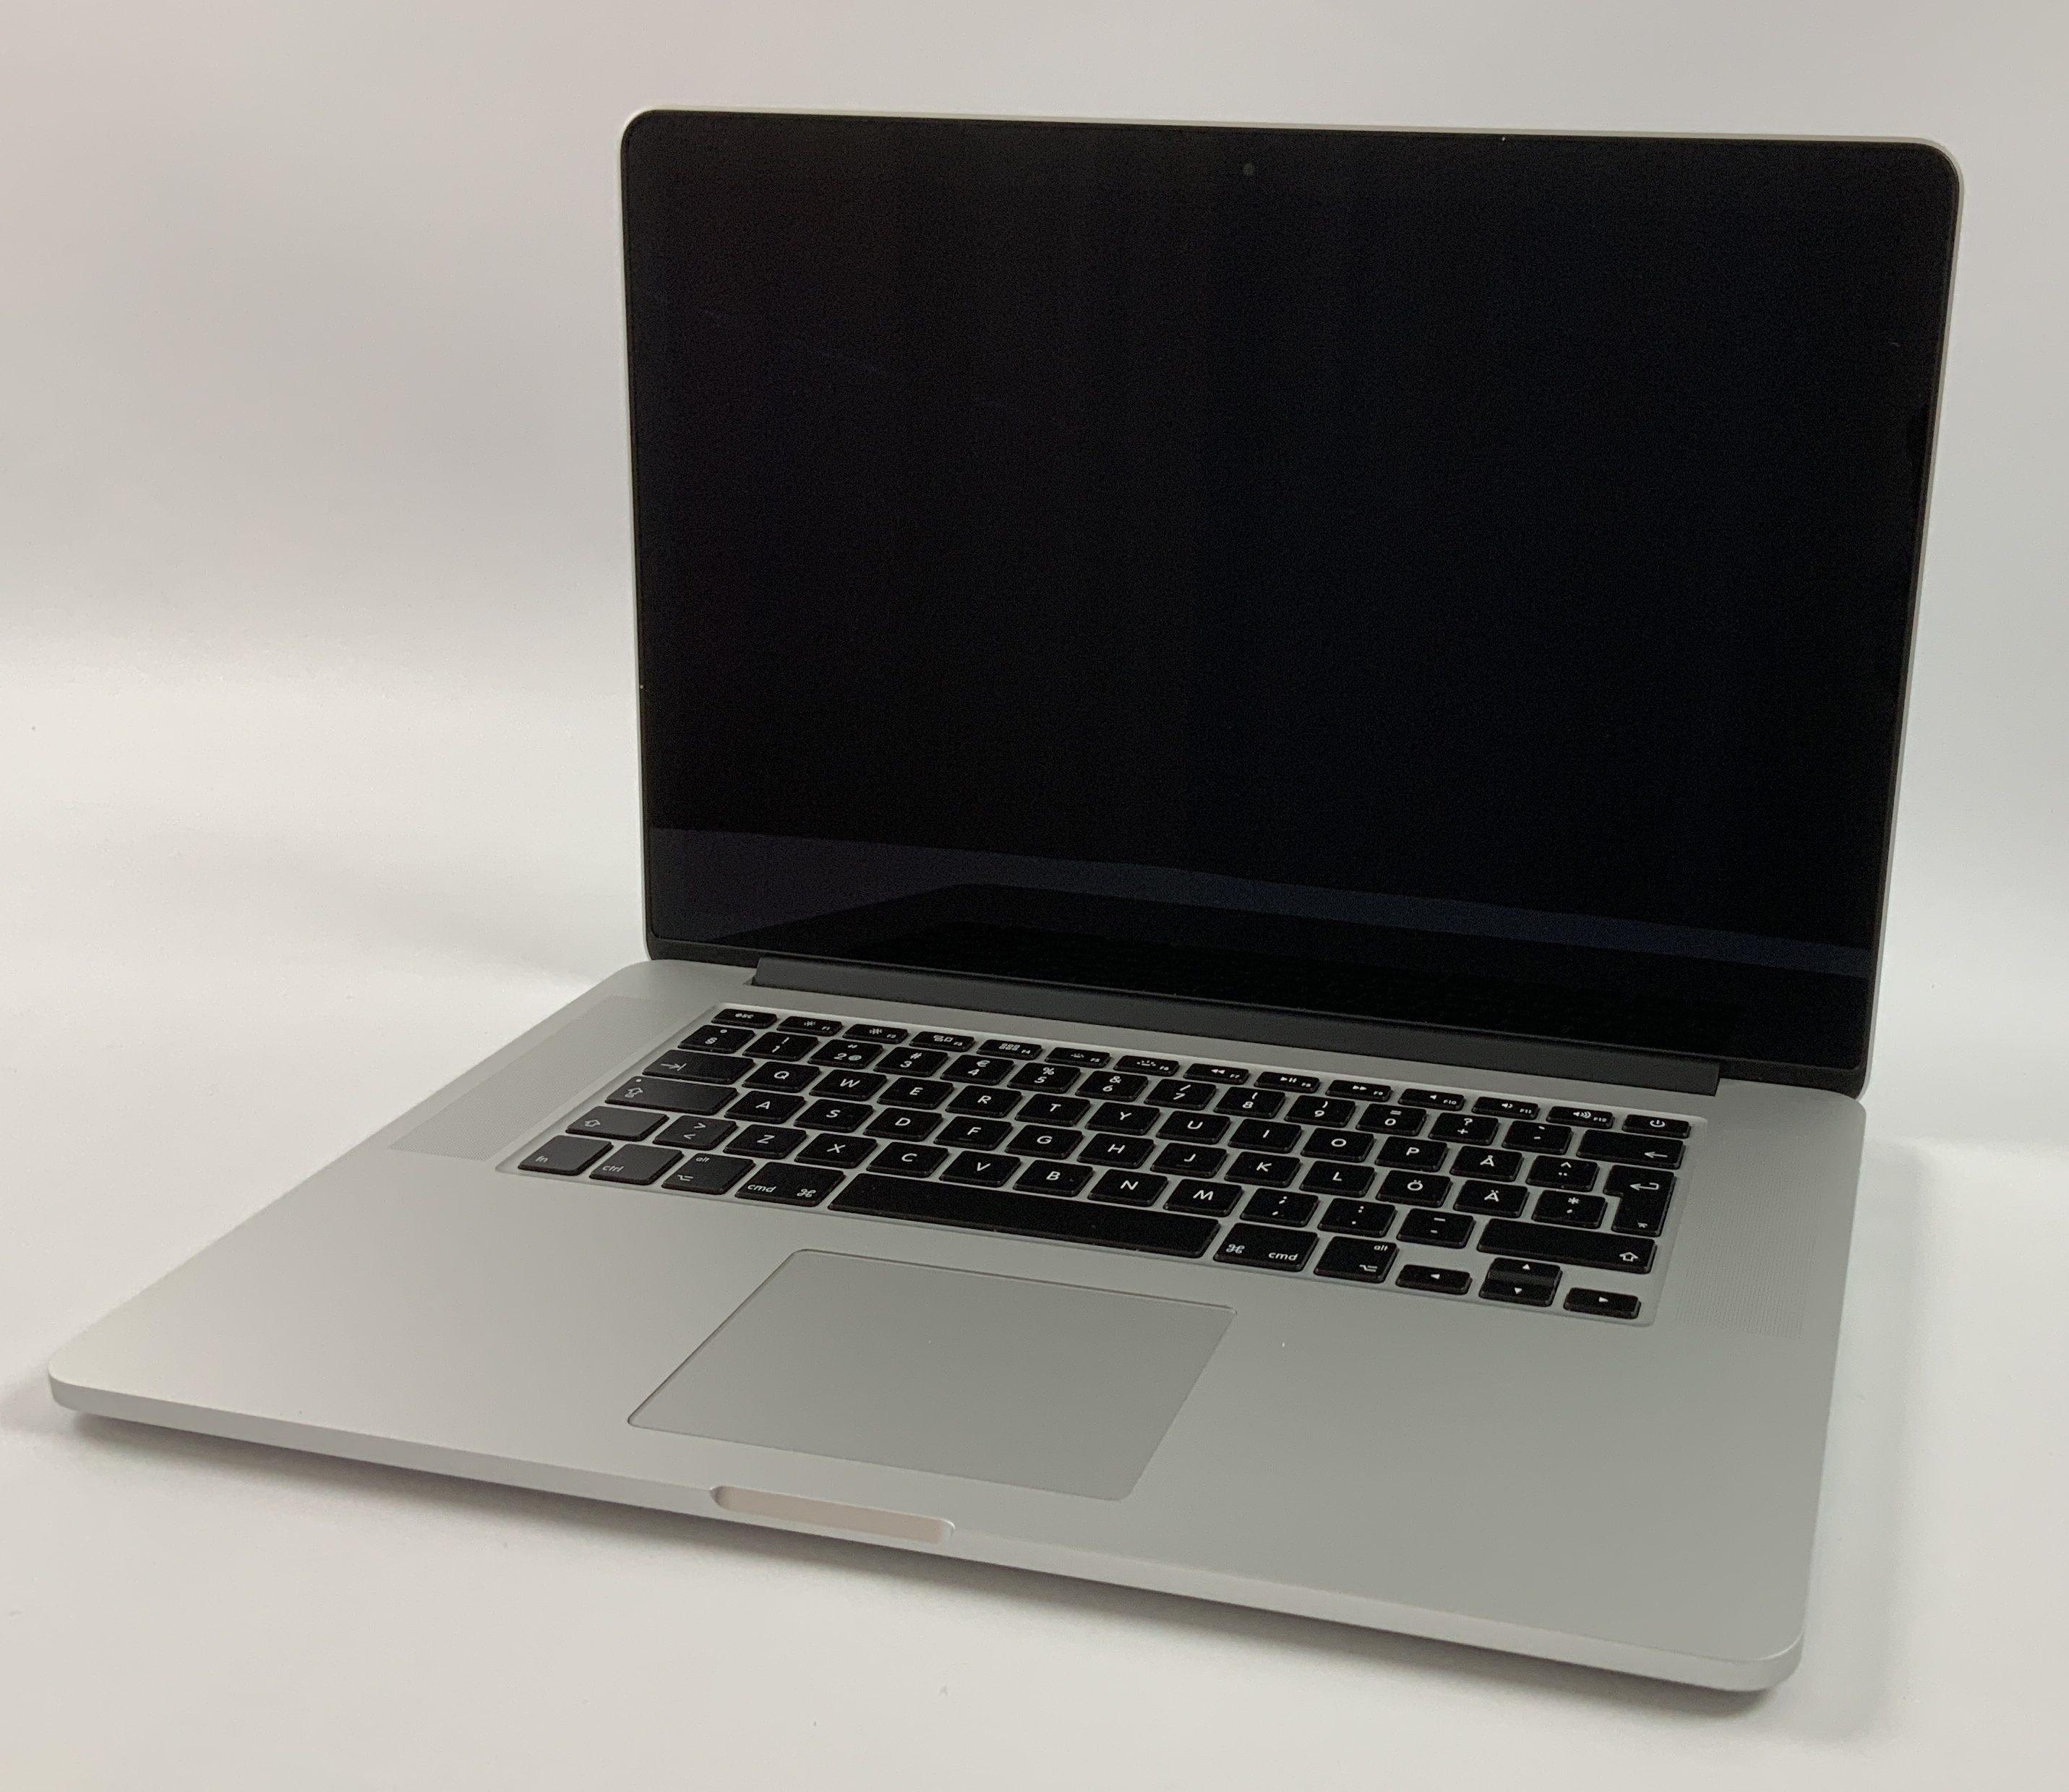 "MacBook Pro Retina 15"" Mid 2015 (Intel Quad-Core i7 2.2 GHz 16 GB RAM 256 GB SSD), Intel Quad-Core i7 2.2 GHz, 16 GB RAM, 256 GB SSD, Afbeelding 1"